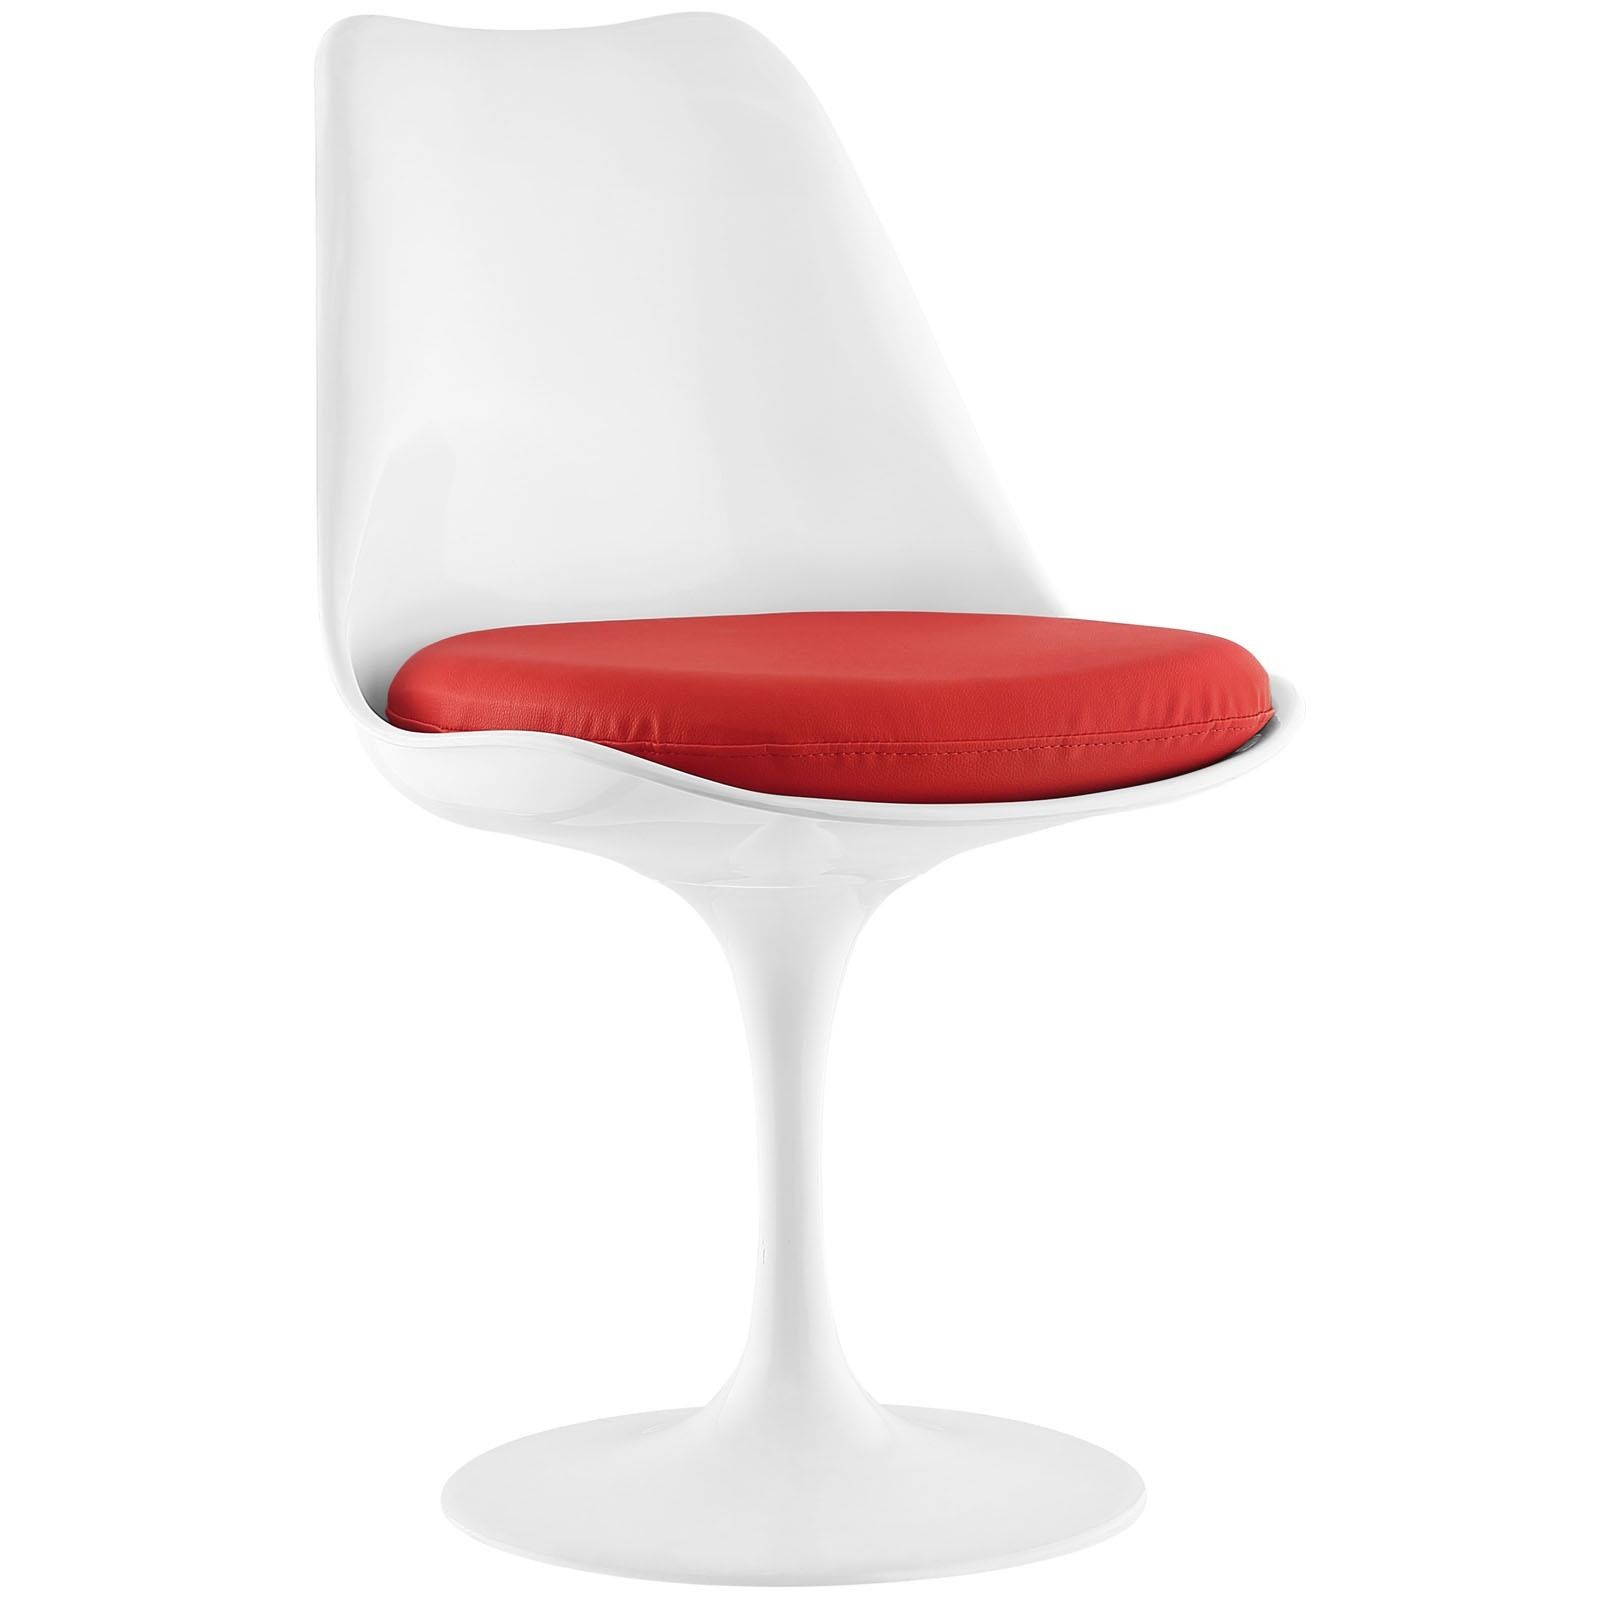 Modway Lippa Vinyl Dining Side Chair (Red) (Plastic) | Products Intended For Circuit Swivel Accent Chairs (View 15 of 25)